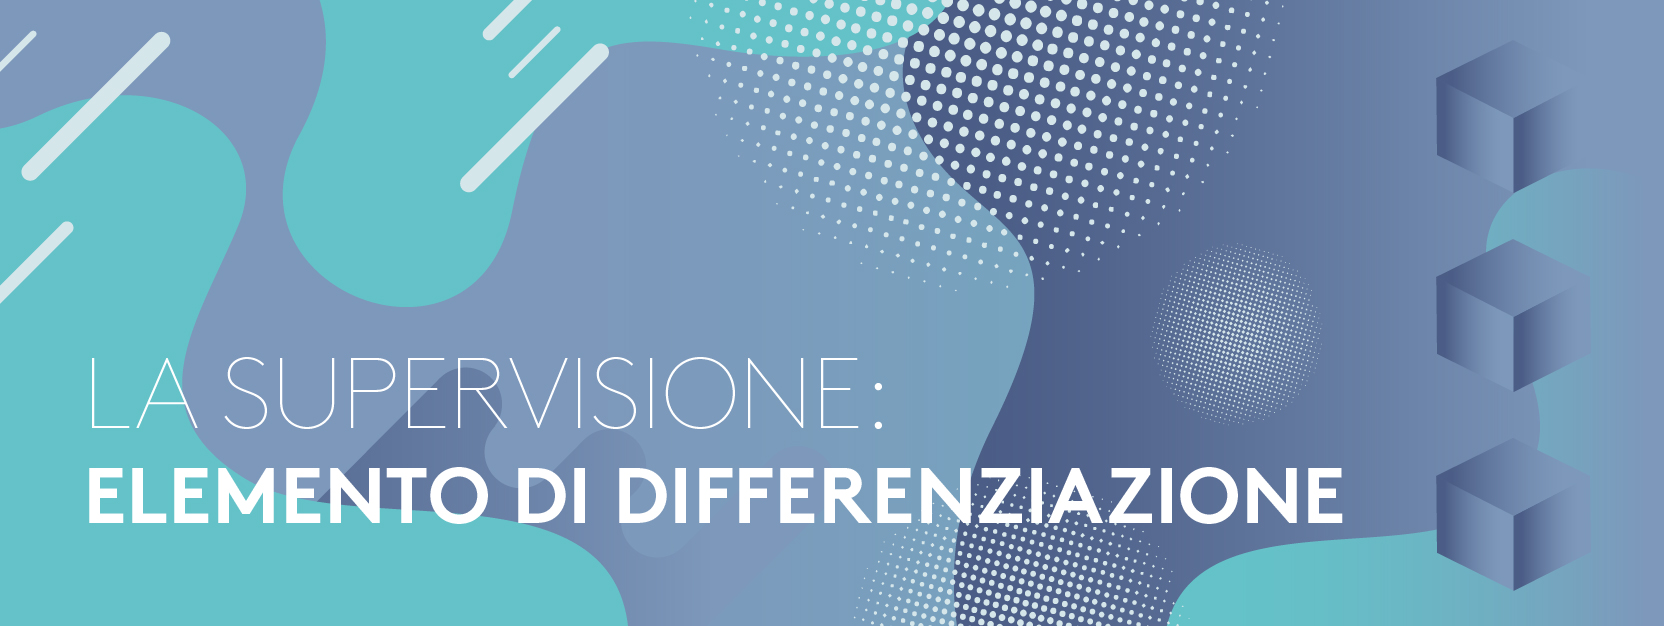 LA SUPERVISIONE: Elemento di differenziazione